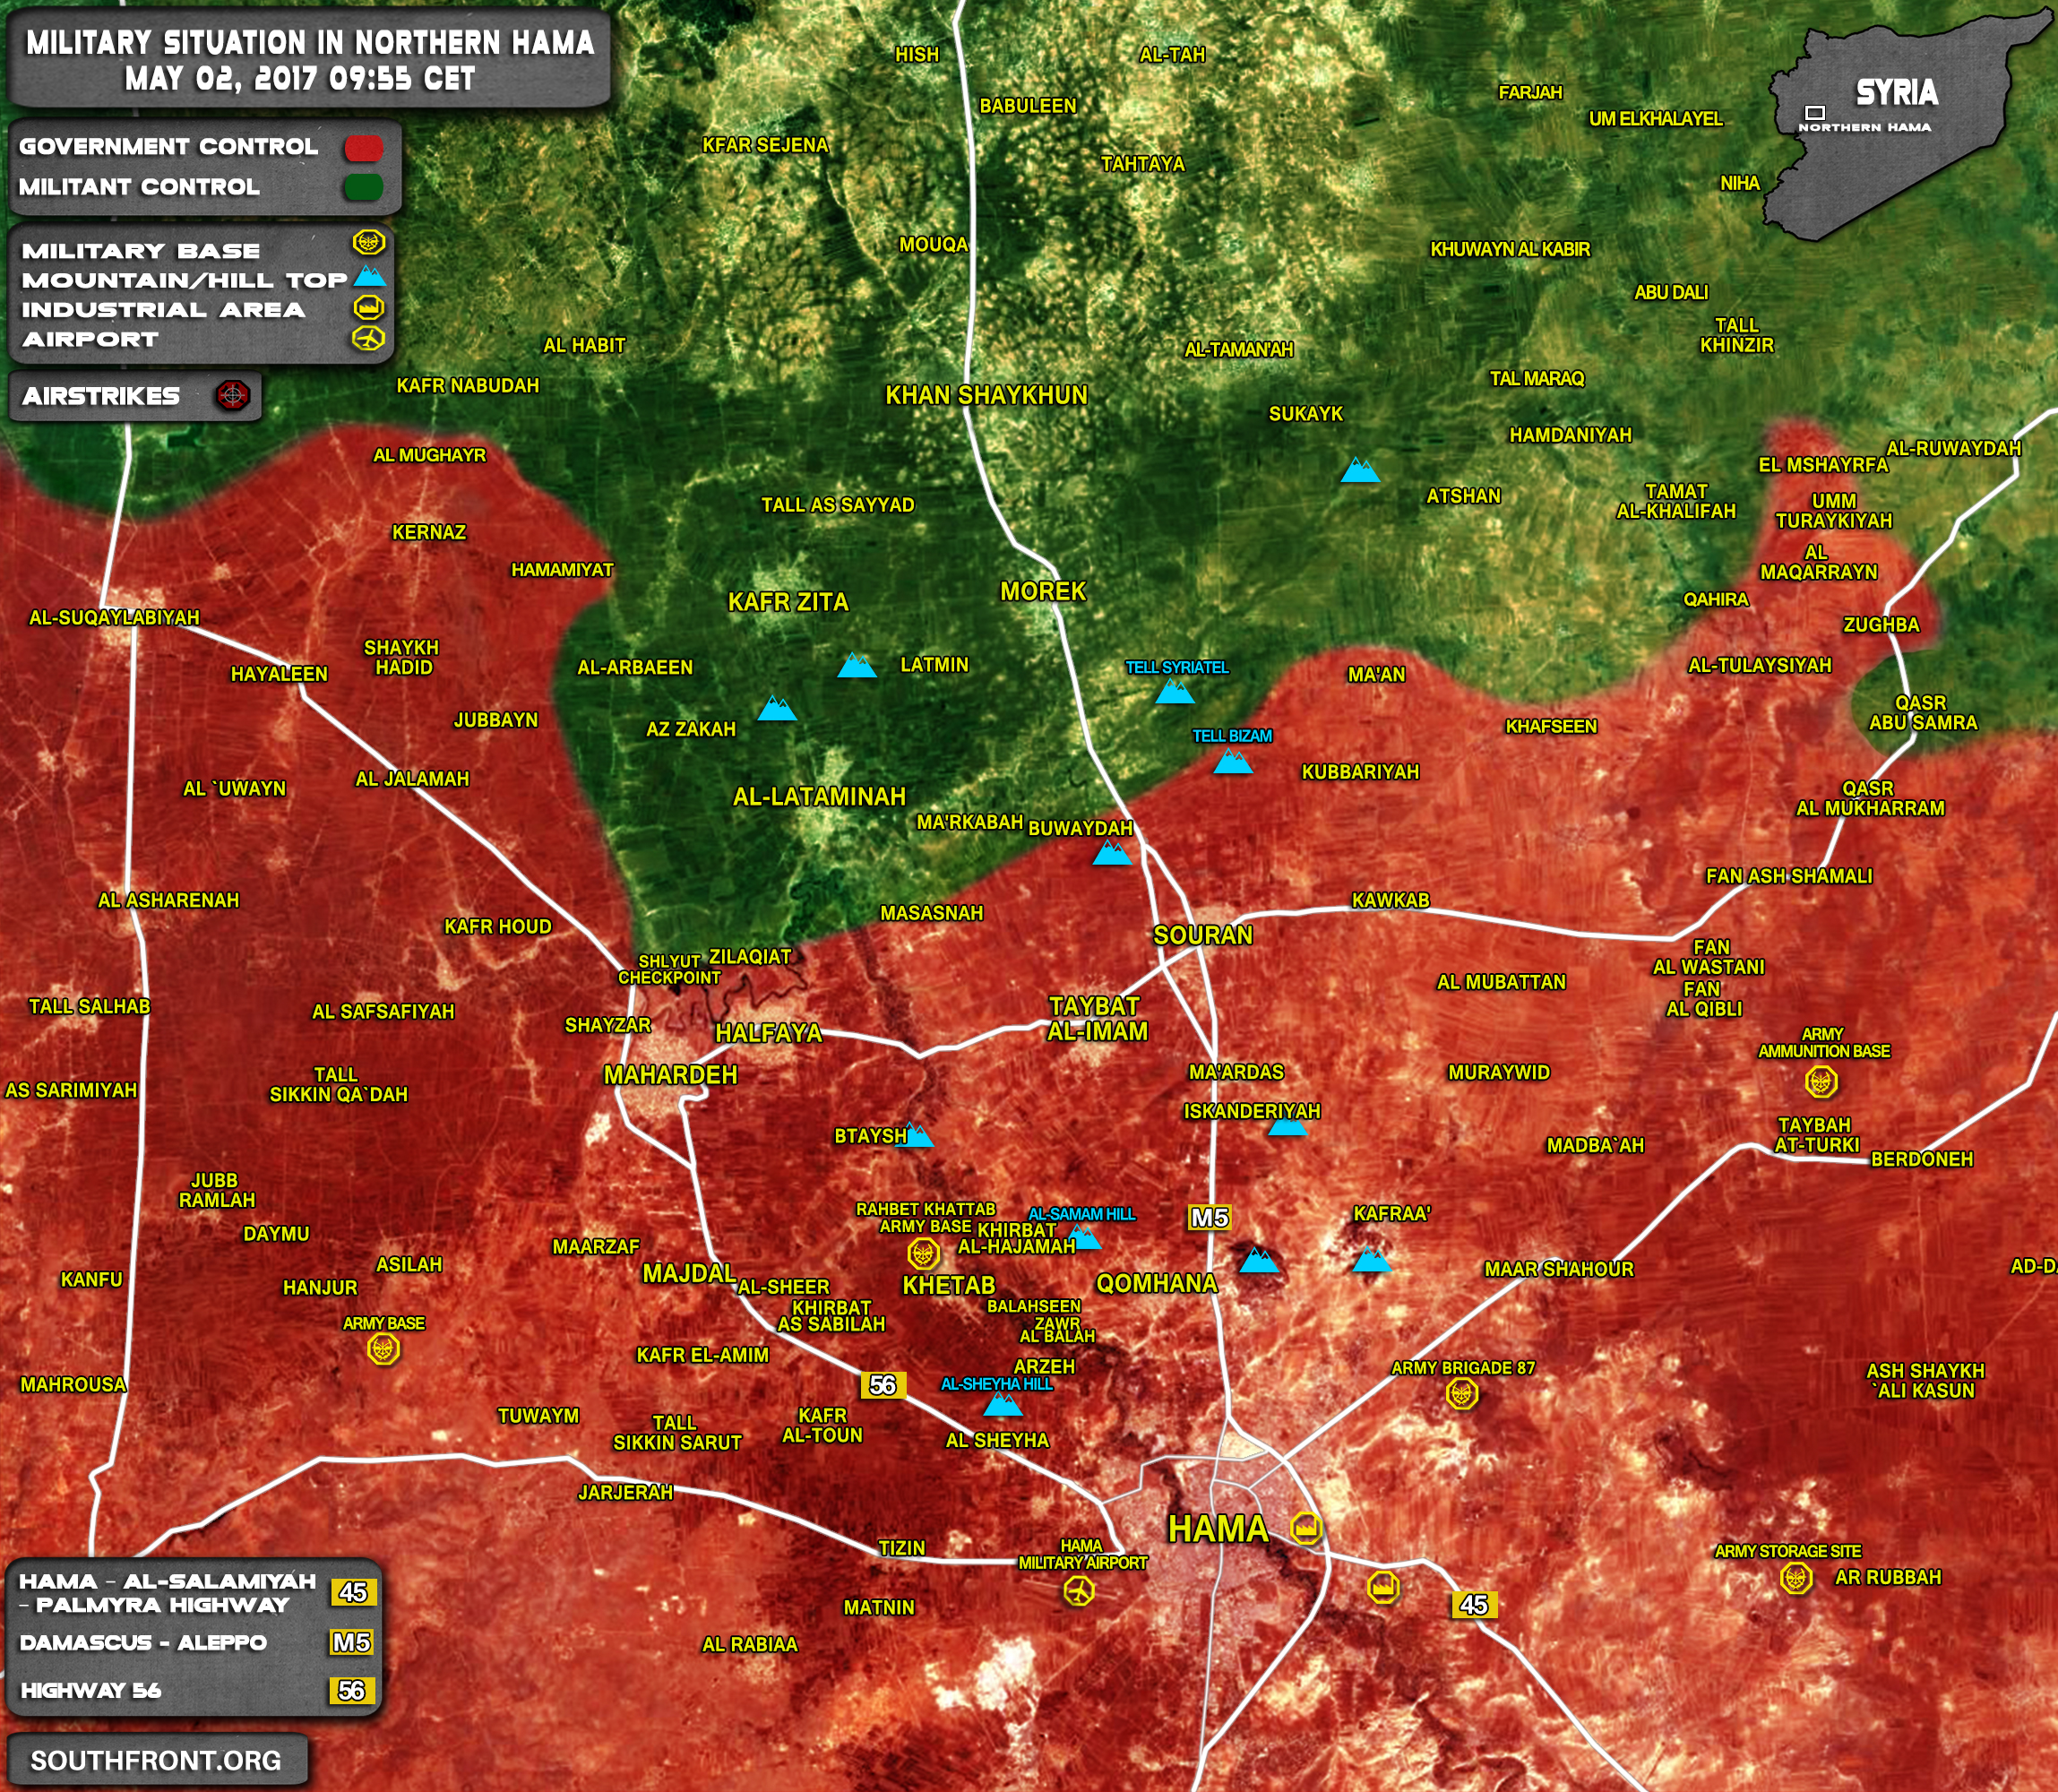 Military Situation In Northern Hama On May 2, 2017 (Map Update)